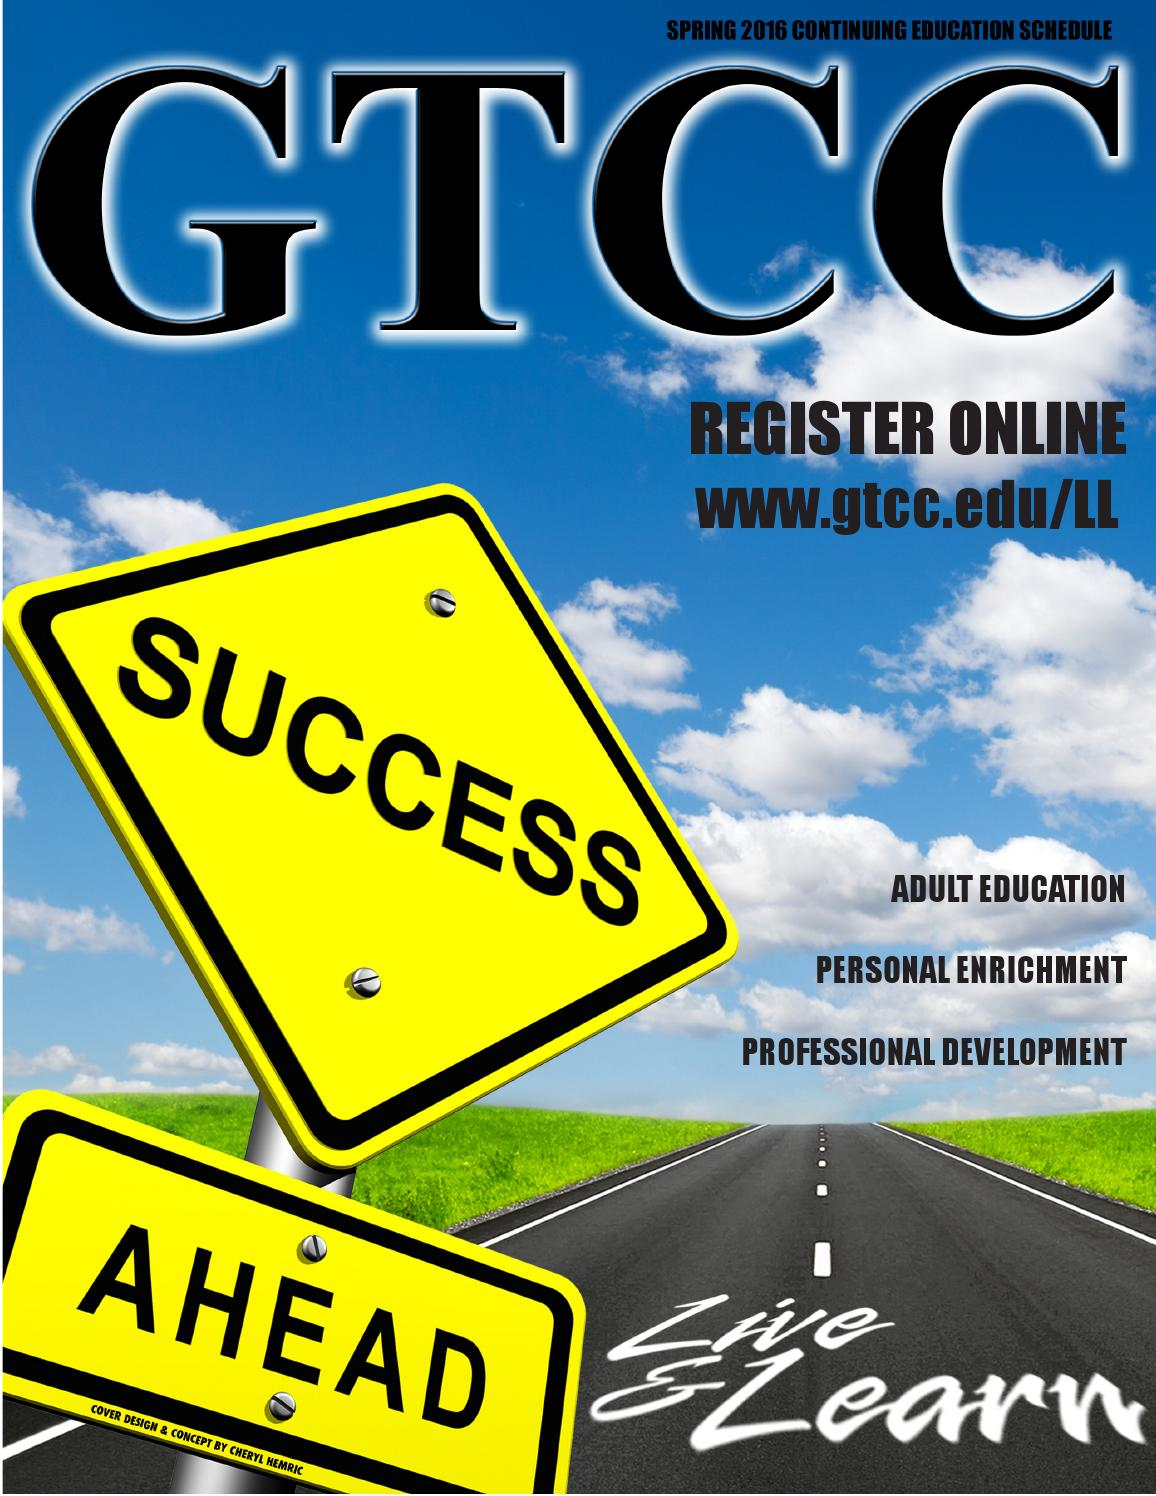 Gtccs spring 2016 live learn schedule by guilford technical gtccs spring 2016 live learn schedule by guilford technical community college issuu 1betcityfo Choice Image